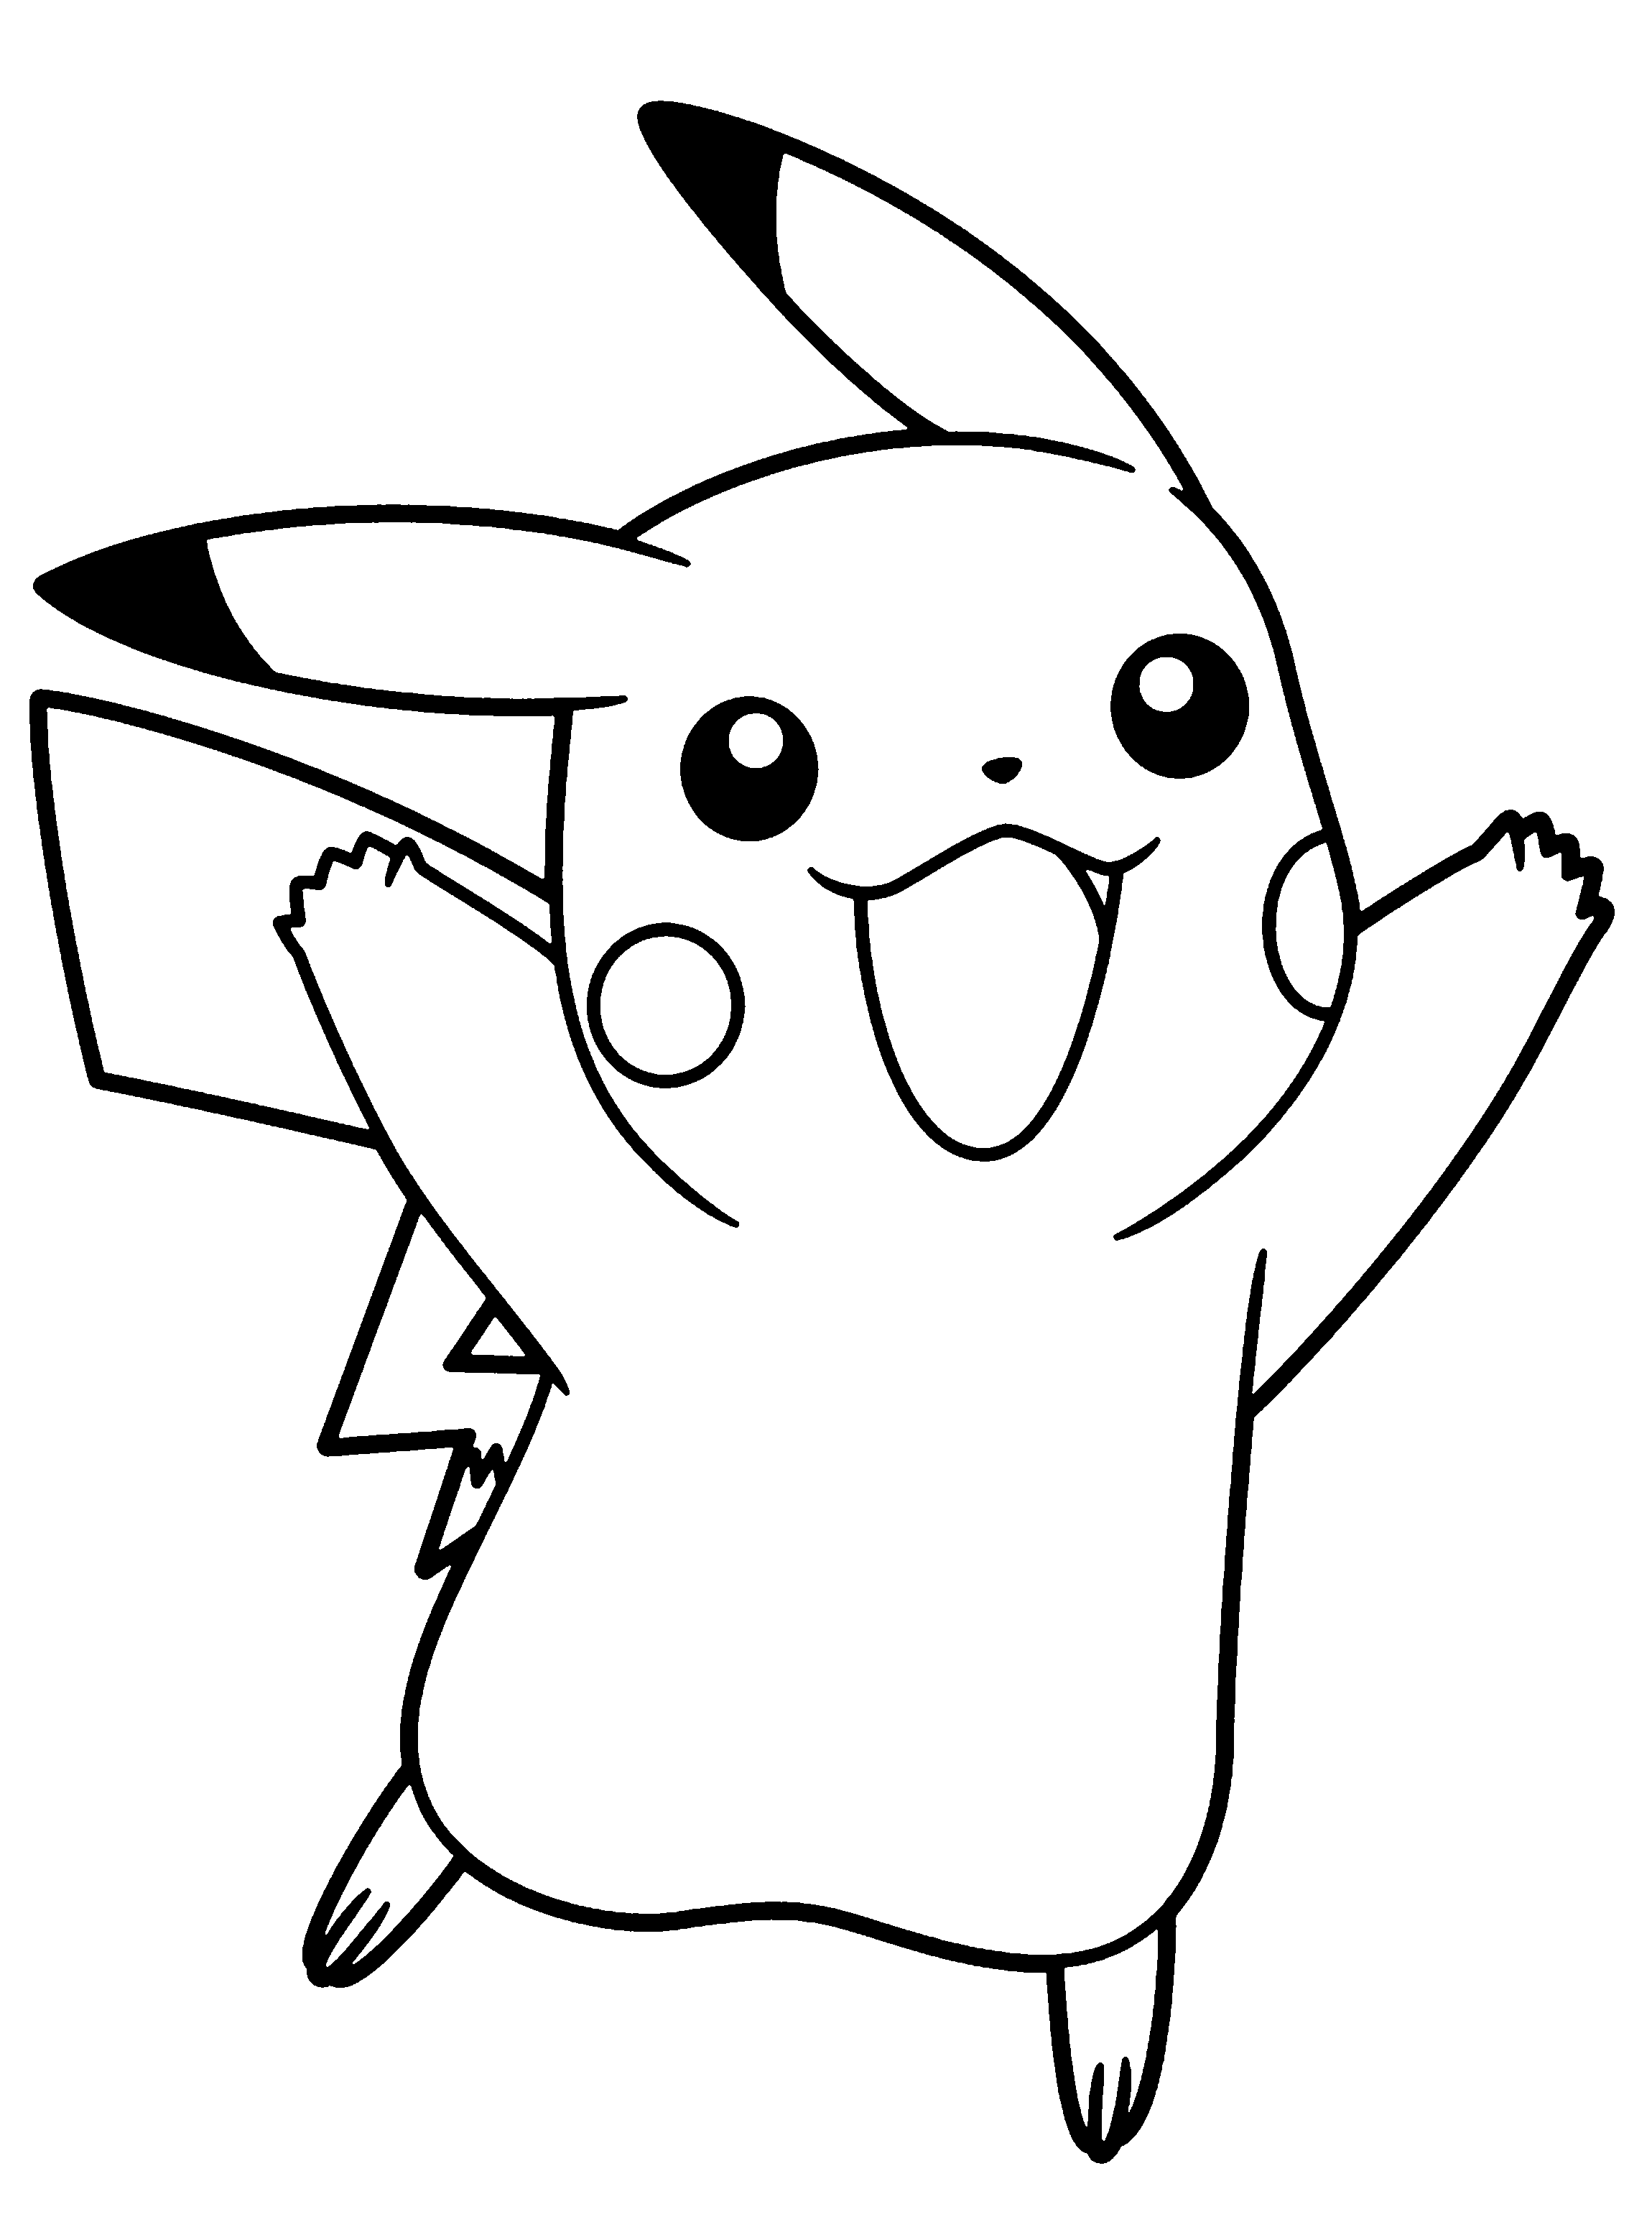 2300x3100 Pikachu Coloring Pages To Download And Print For Free Painting